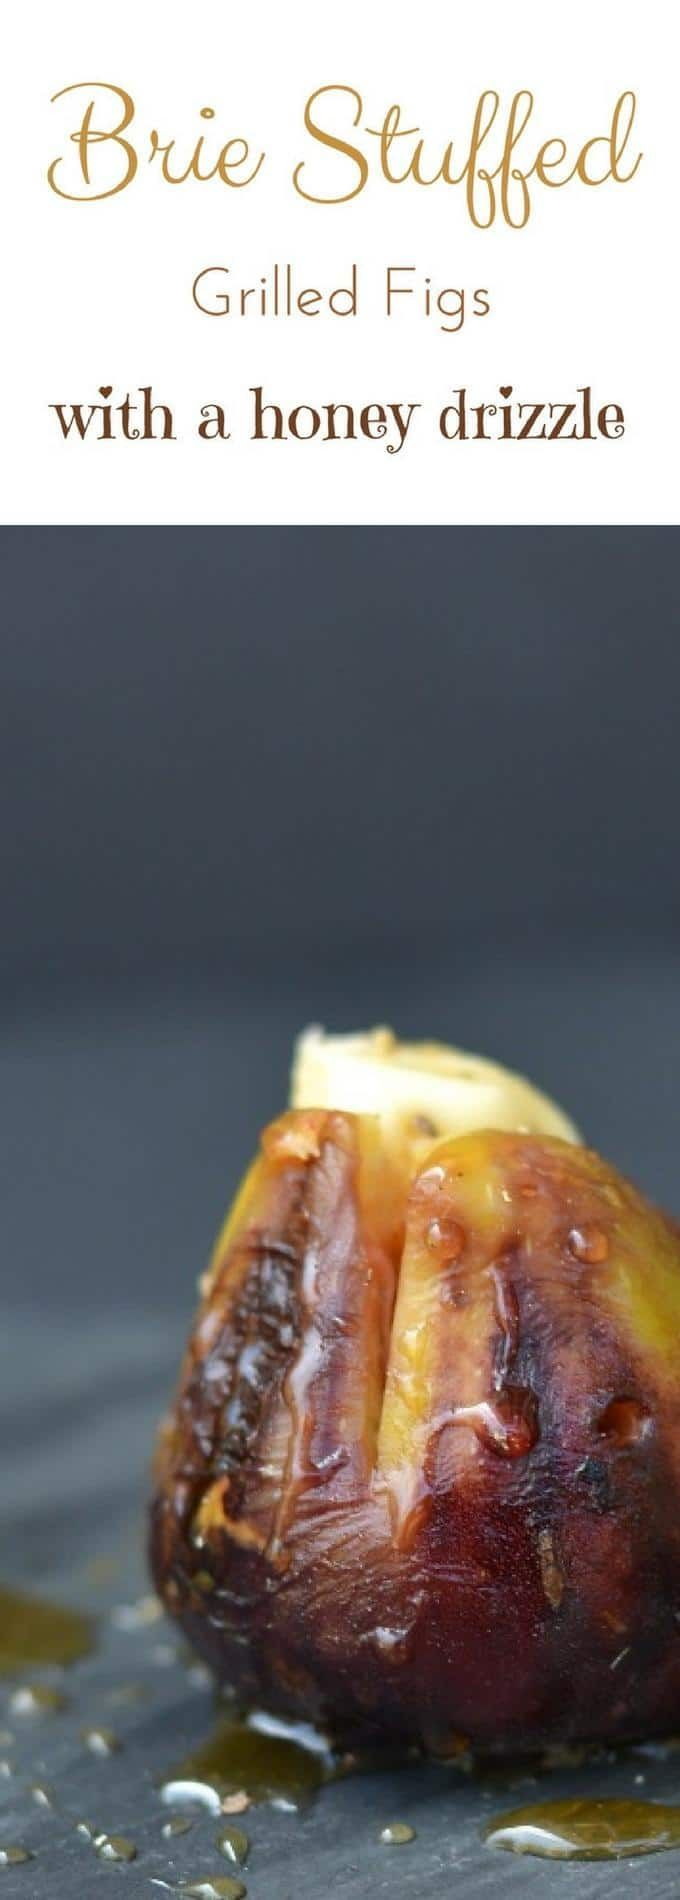 Grilled Brie-Stuffed Figs with a Honey Drizzle via @fearlessdining